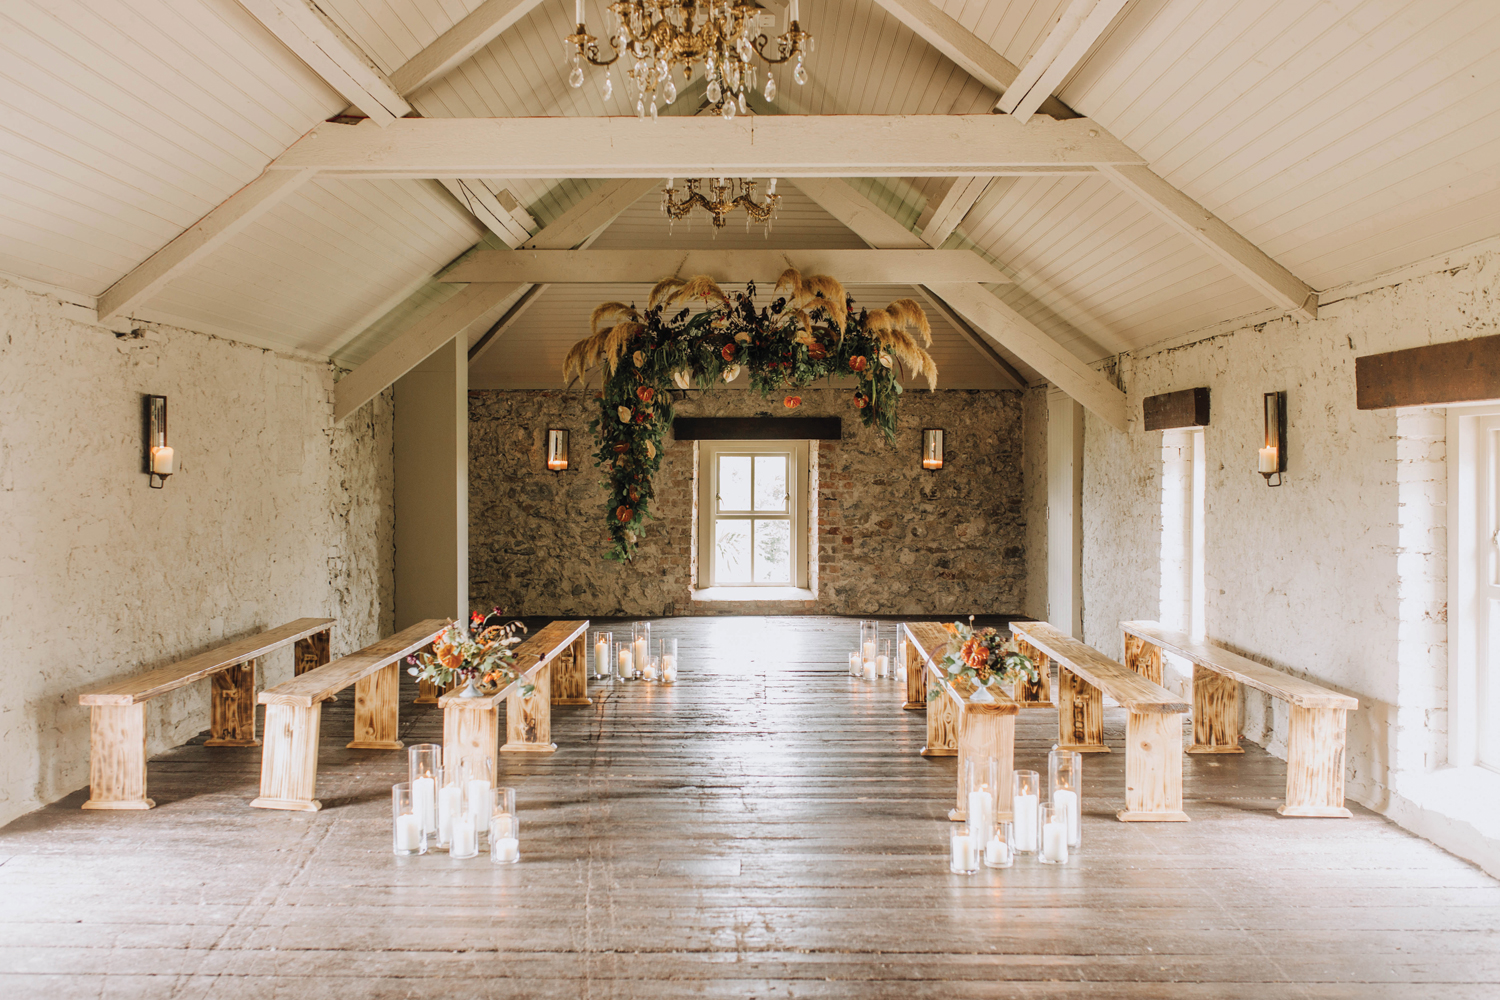 Hillmount-house-wedding-venue-ireland-2.jpg